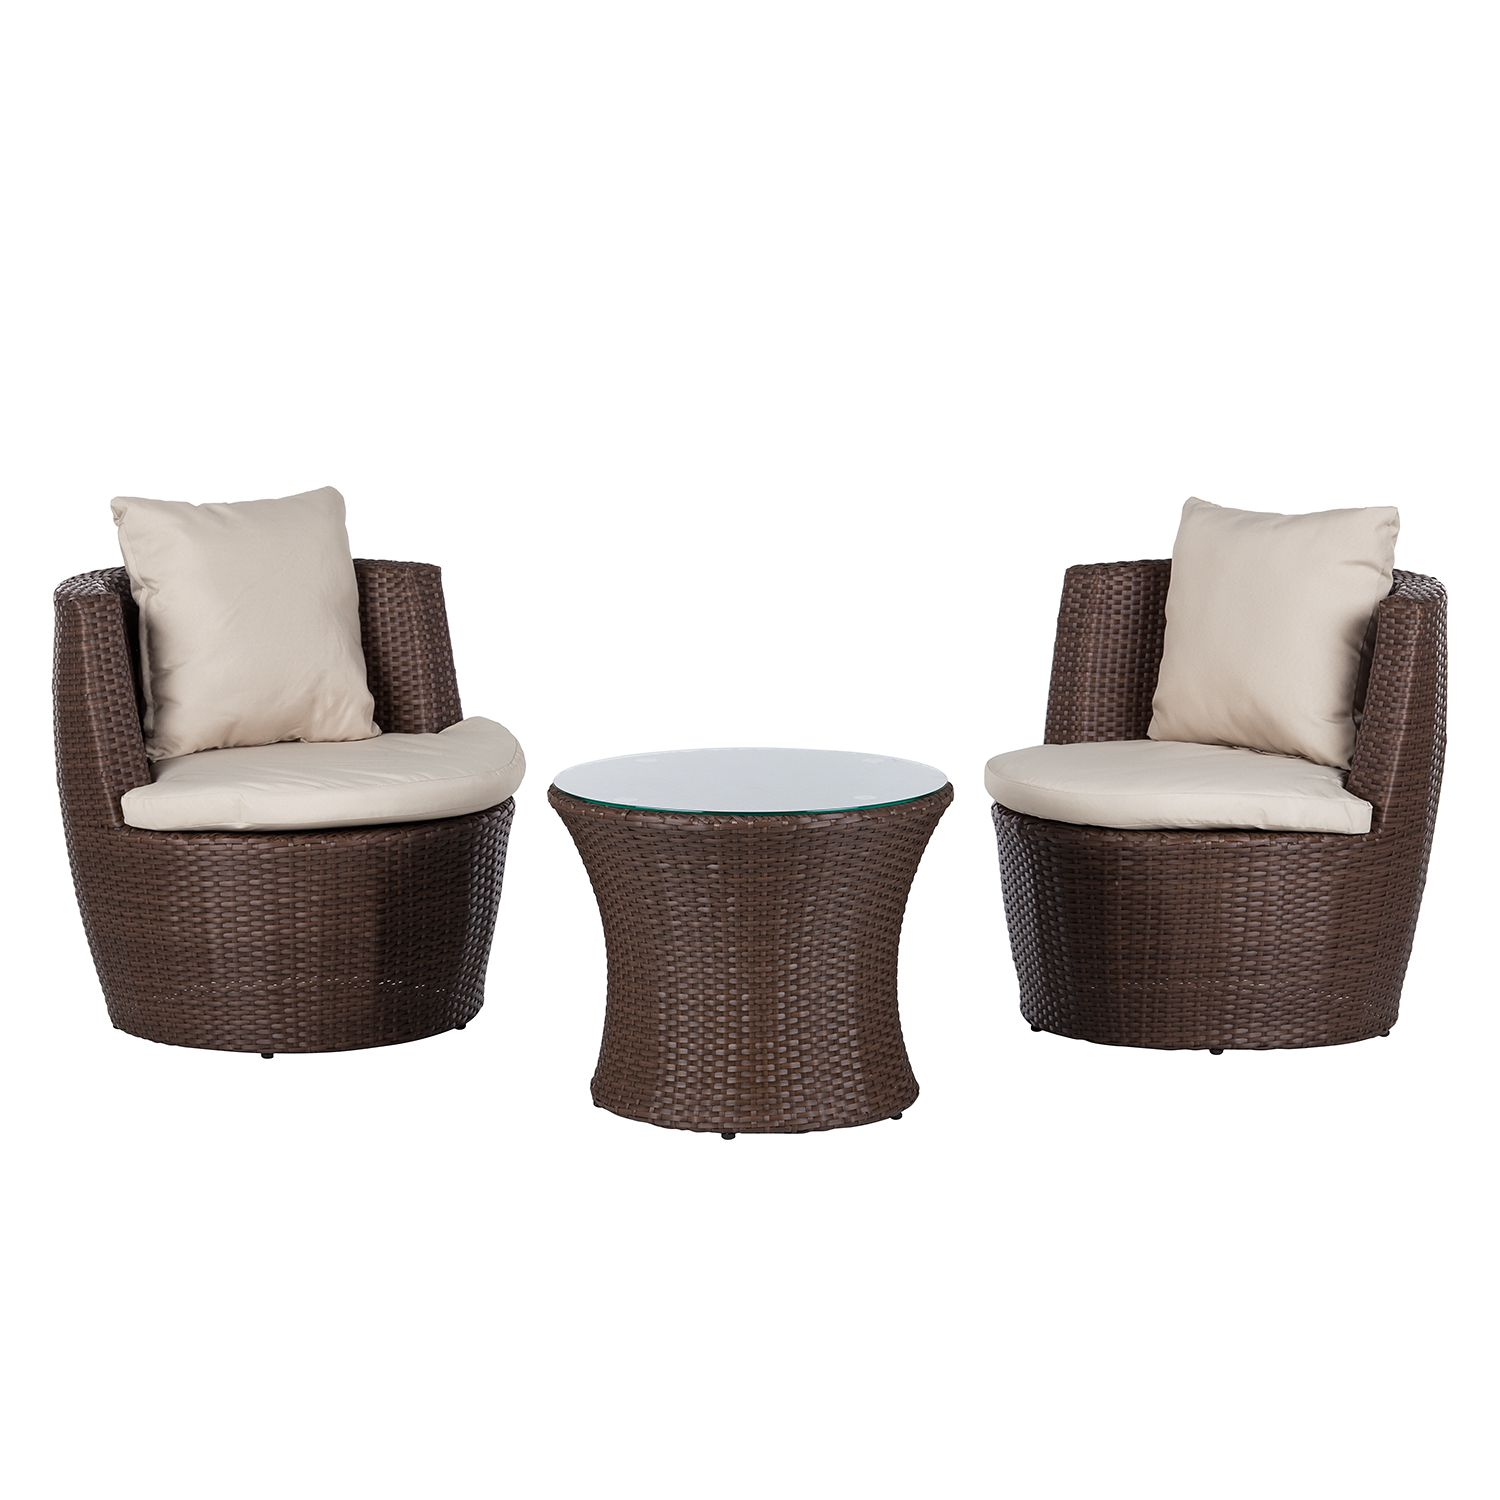 balkon set rattanesco puca 3 teilig polyrattan textil braun beige fredriks online kaufen. Black Bedroom Furniture Sets. Home Design Ideas